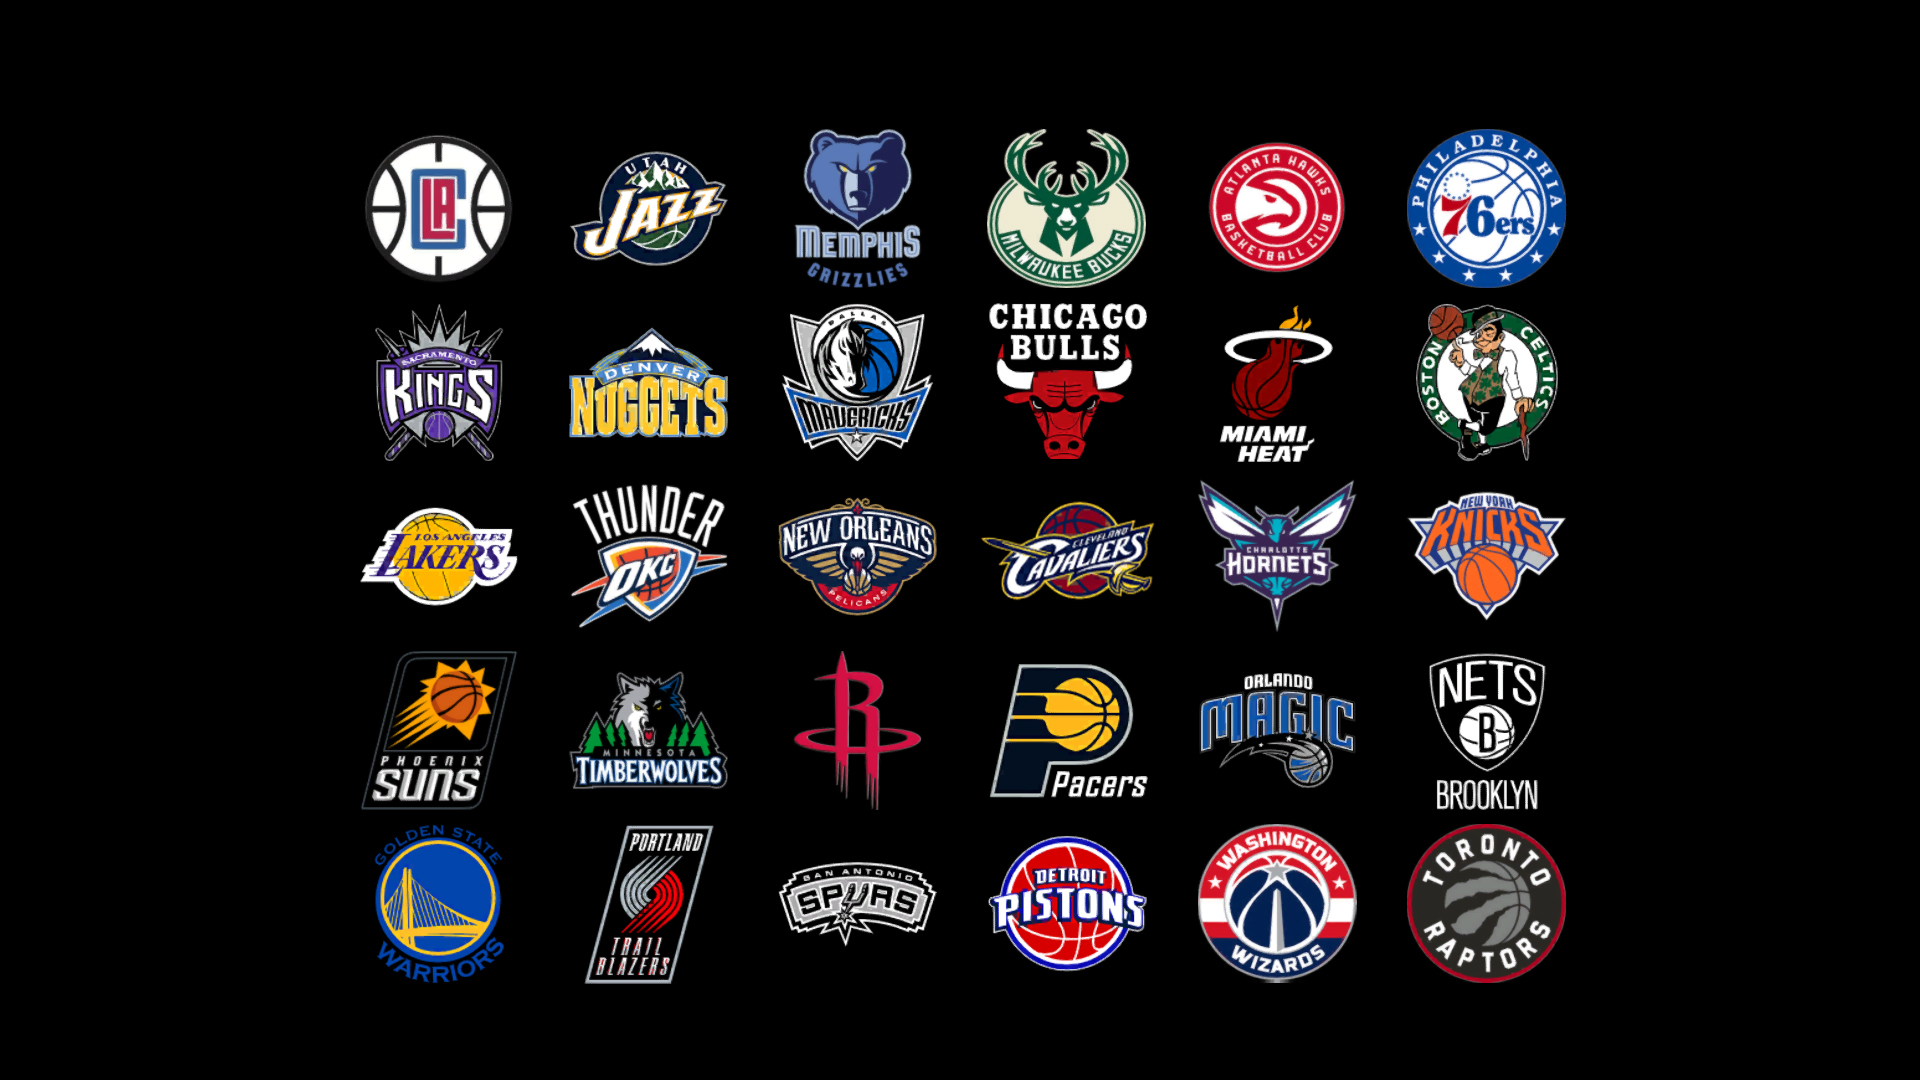 Nba basketball teams 2015 calendars pictures to pin on pinterest